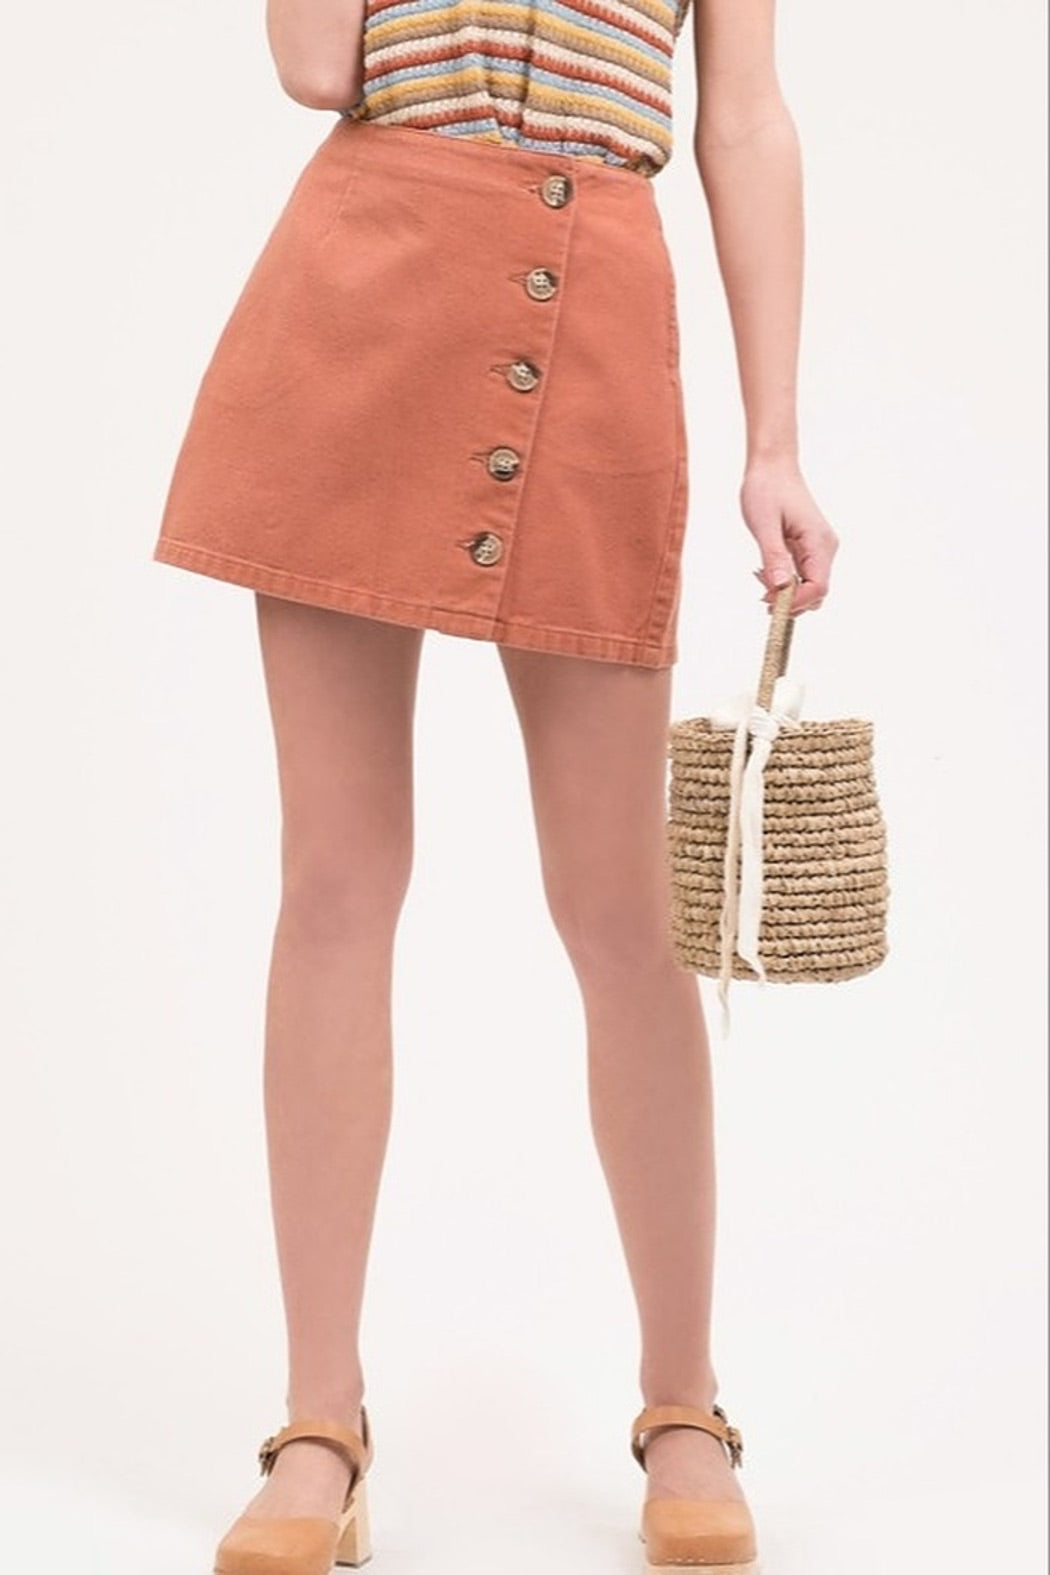 Brick Red Mini Skirt with Buttons